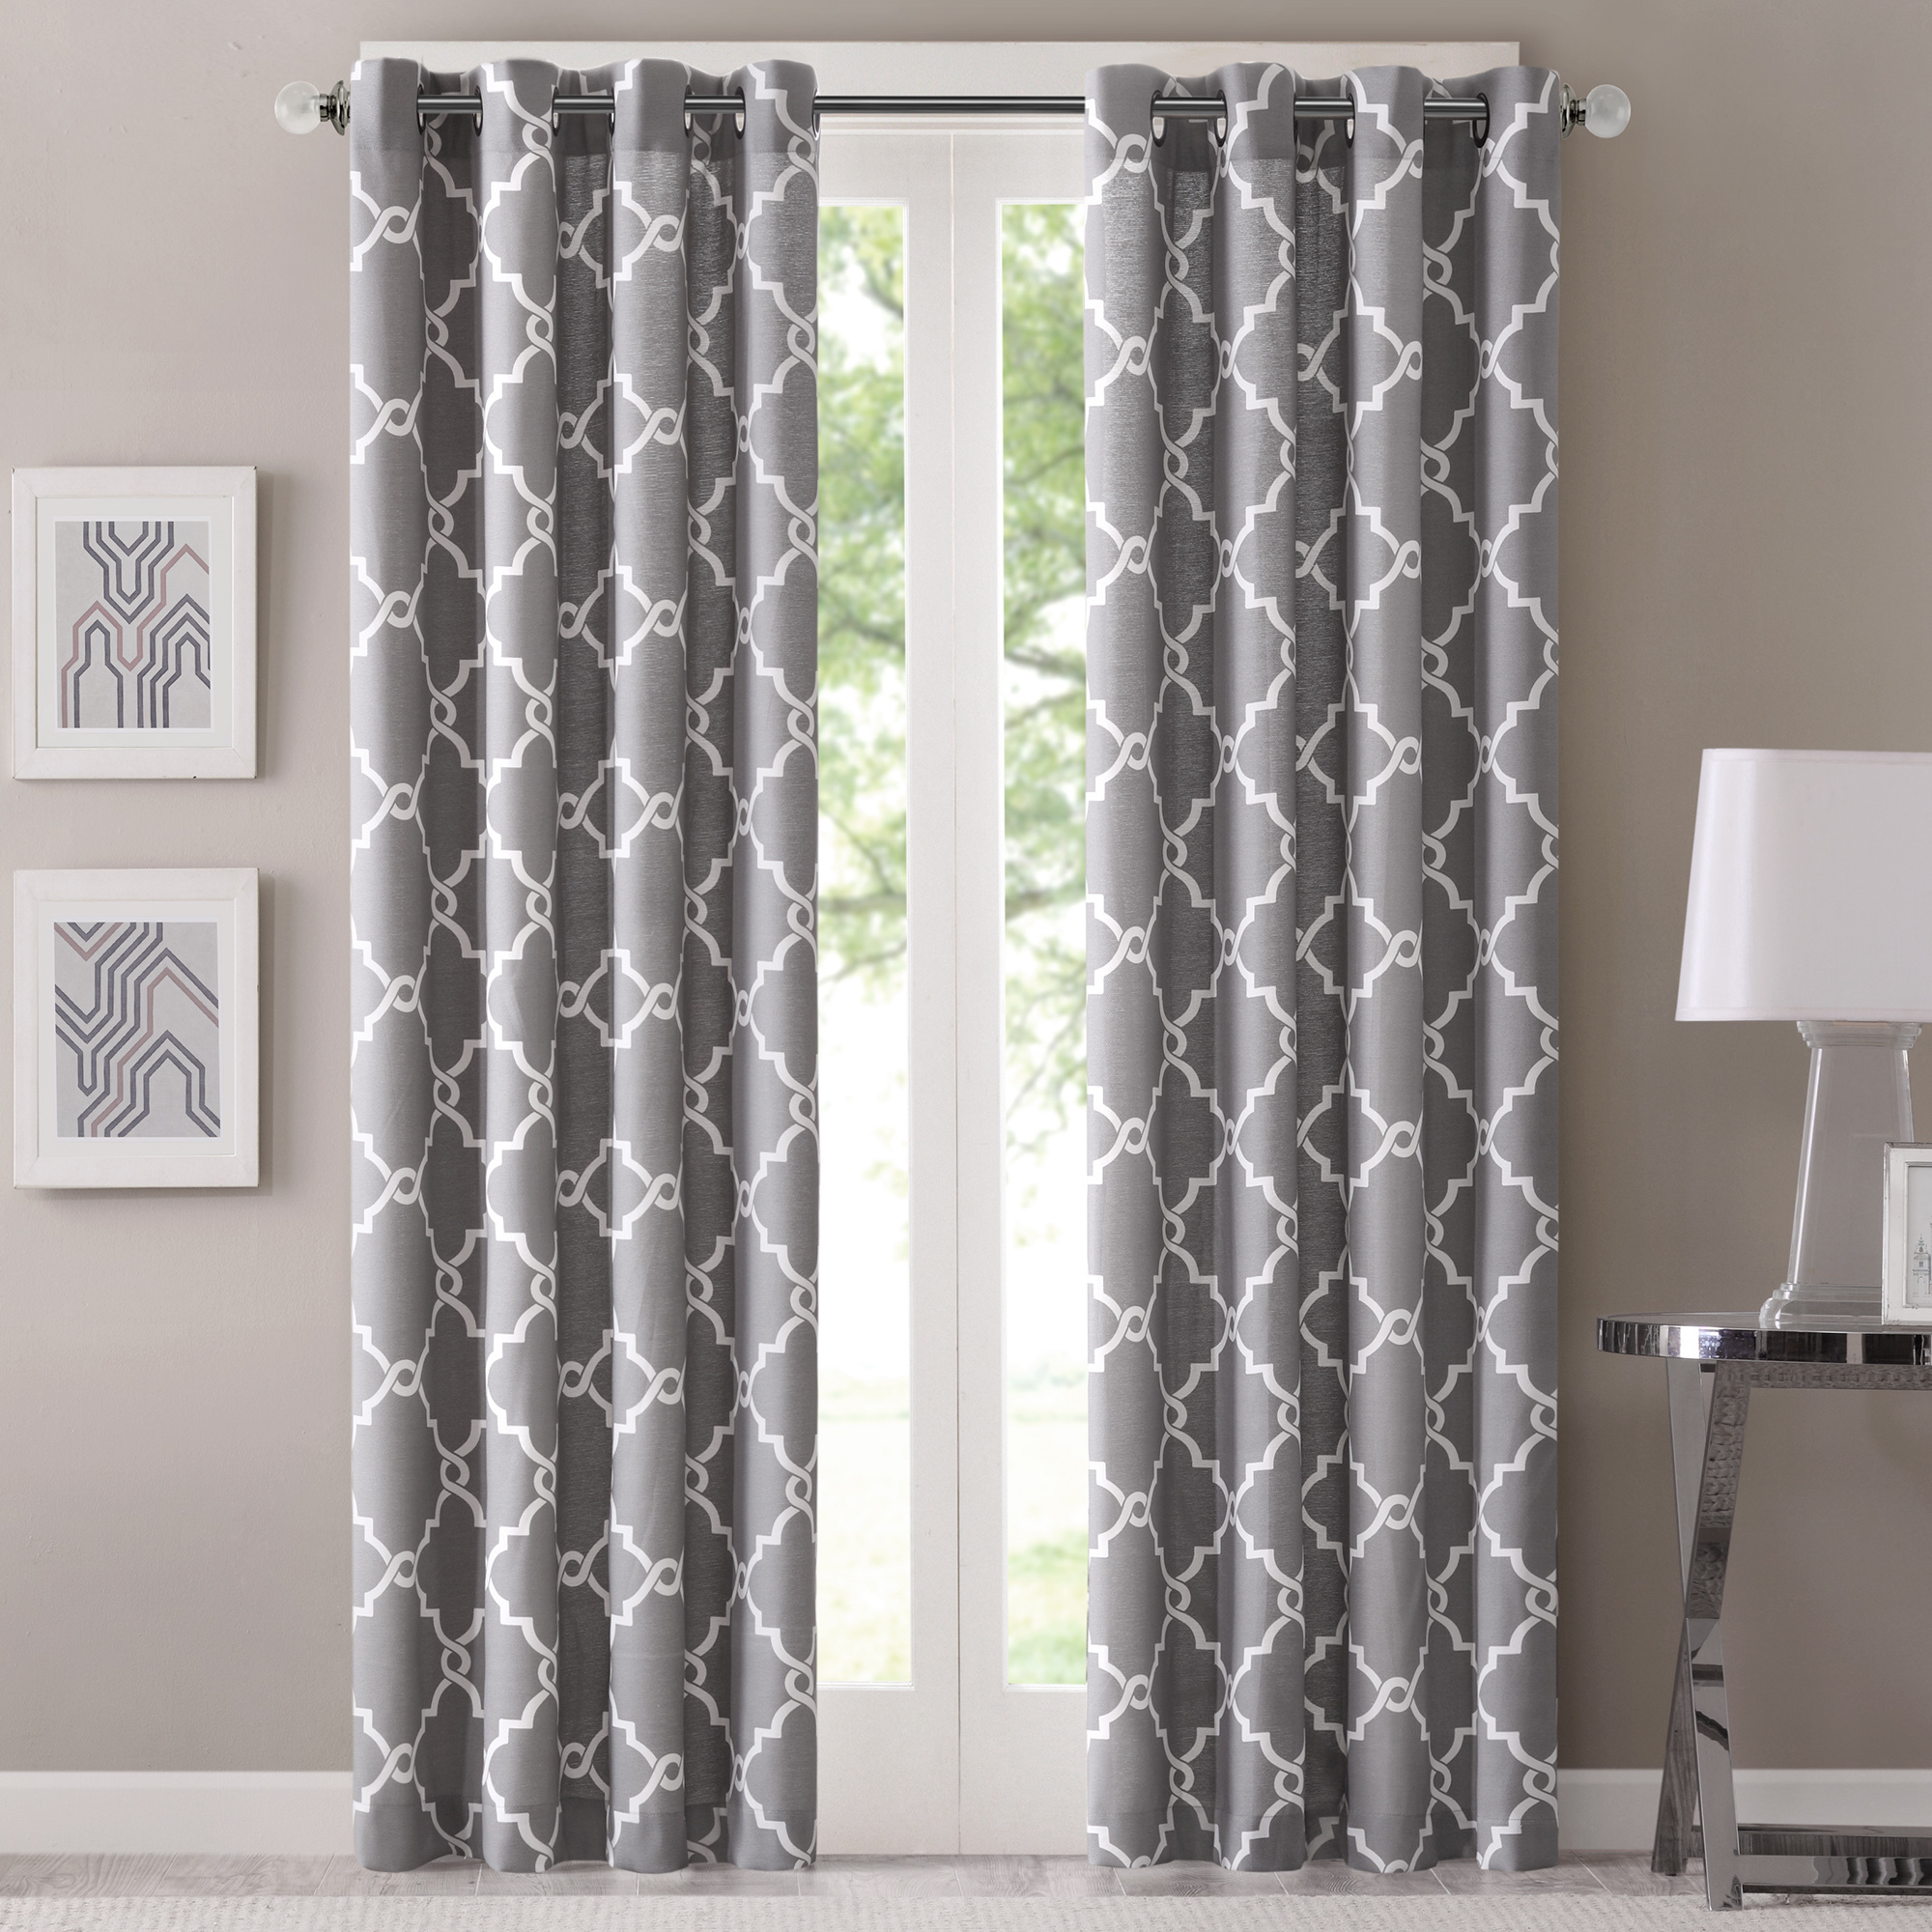 madsion-park-westmont-standard-curtain-lengths-standard-curtain-lengths-for-interior-window-decor-curtain-rod-sizes-standard-length-of-curtains-curtains-for-tall-windows-standard-shower